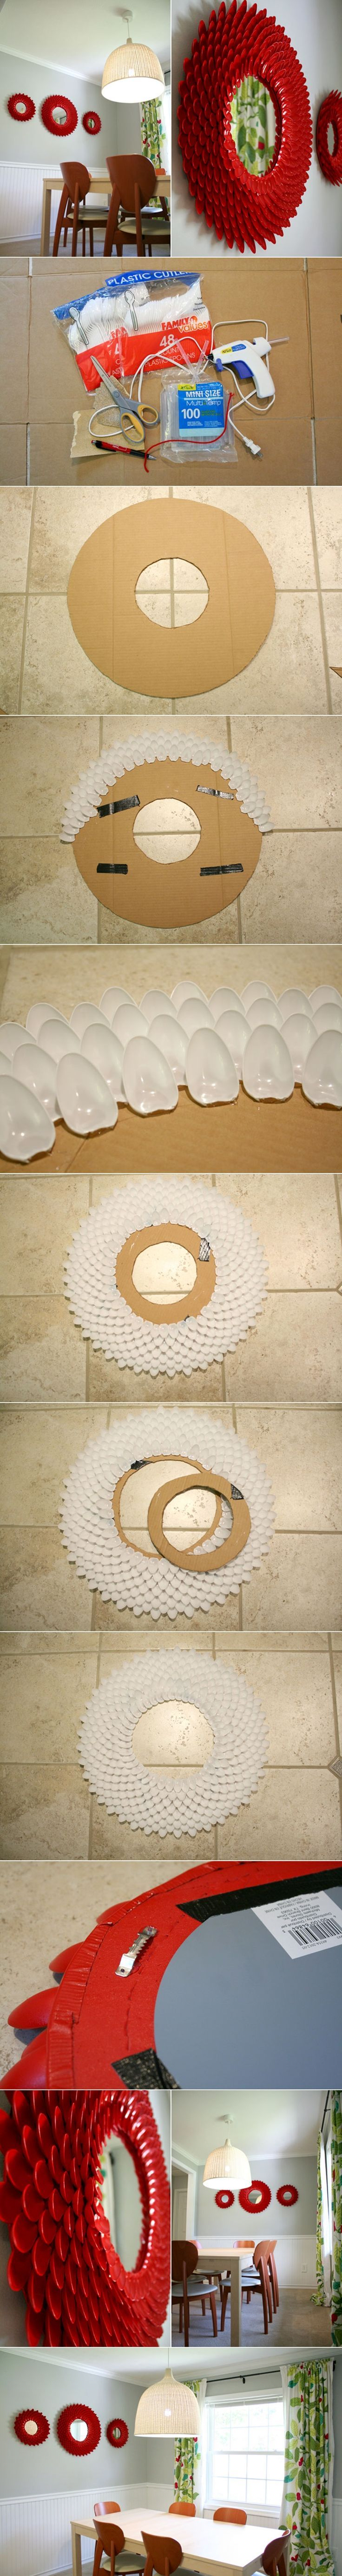 DIY Decorative Chrysanthemum Mirror with Plastic Spoons | <a href=